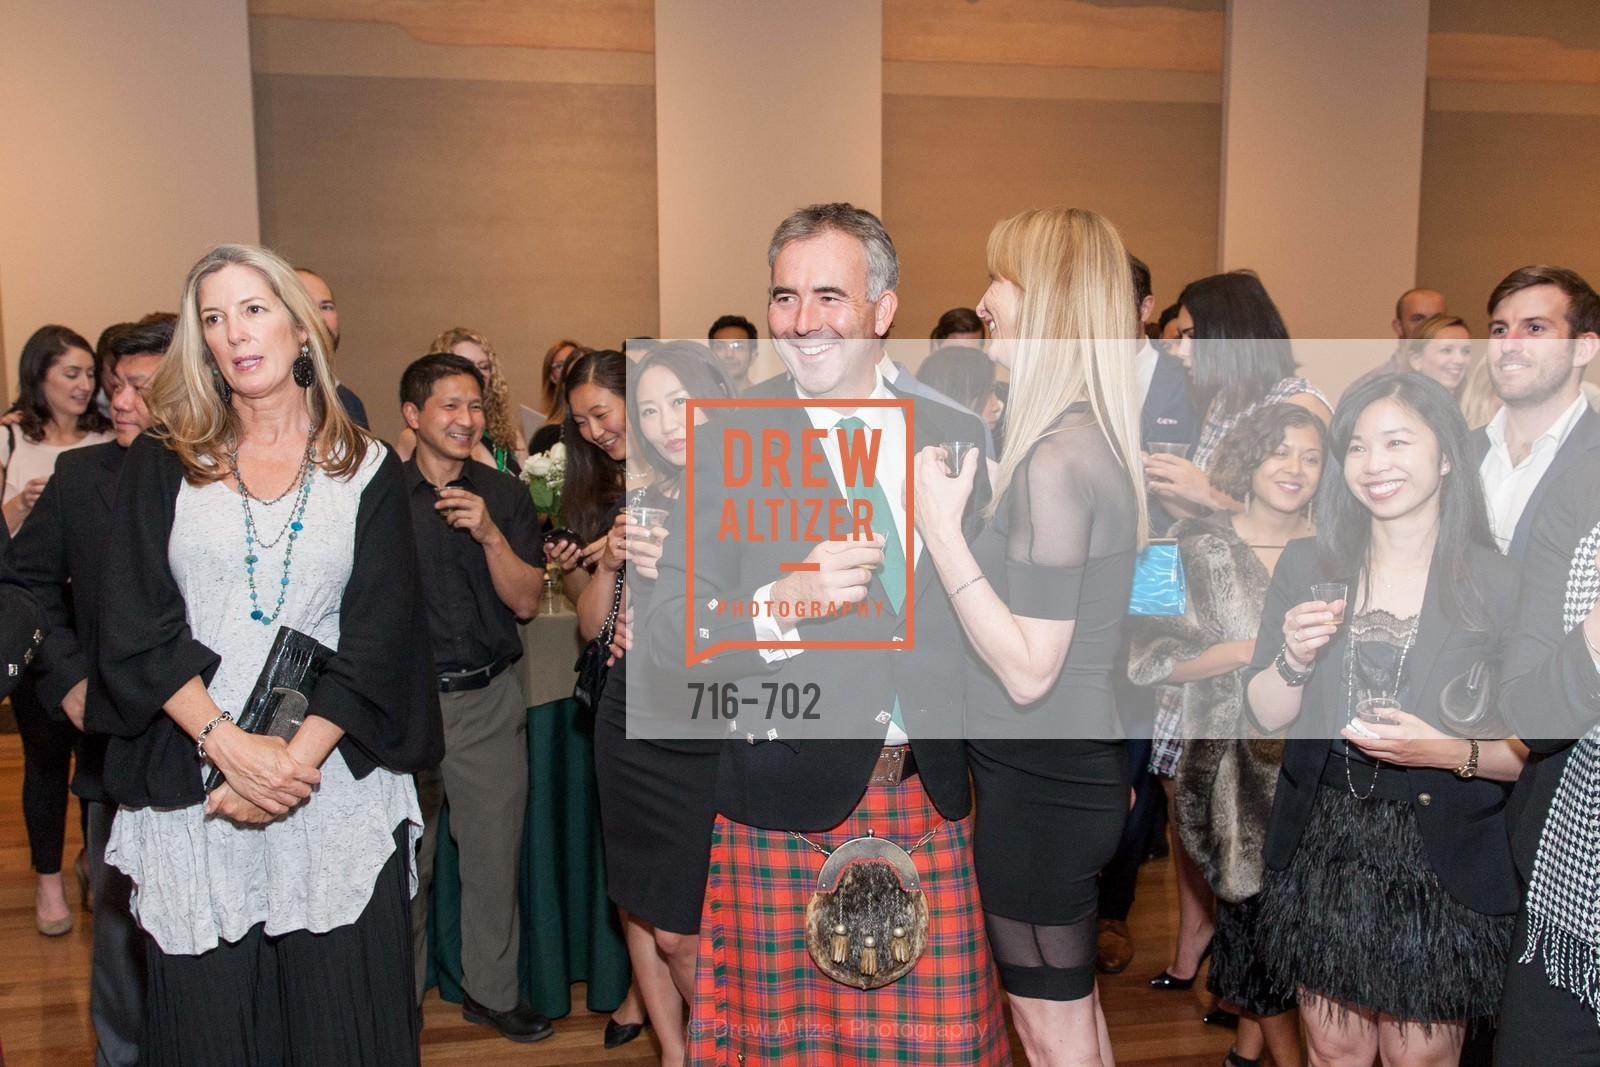 Extras, ARTPOINT:  Masterpieces from the National Galleries of Scotland and Scotch Tastings, May 7th, 2015, Photo,Drew Altizer, Drew Altizer Photography, full-service agency, private events, San Francisco photographer, photographer california